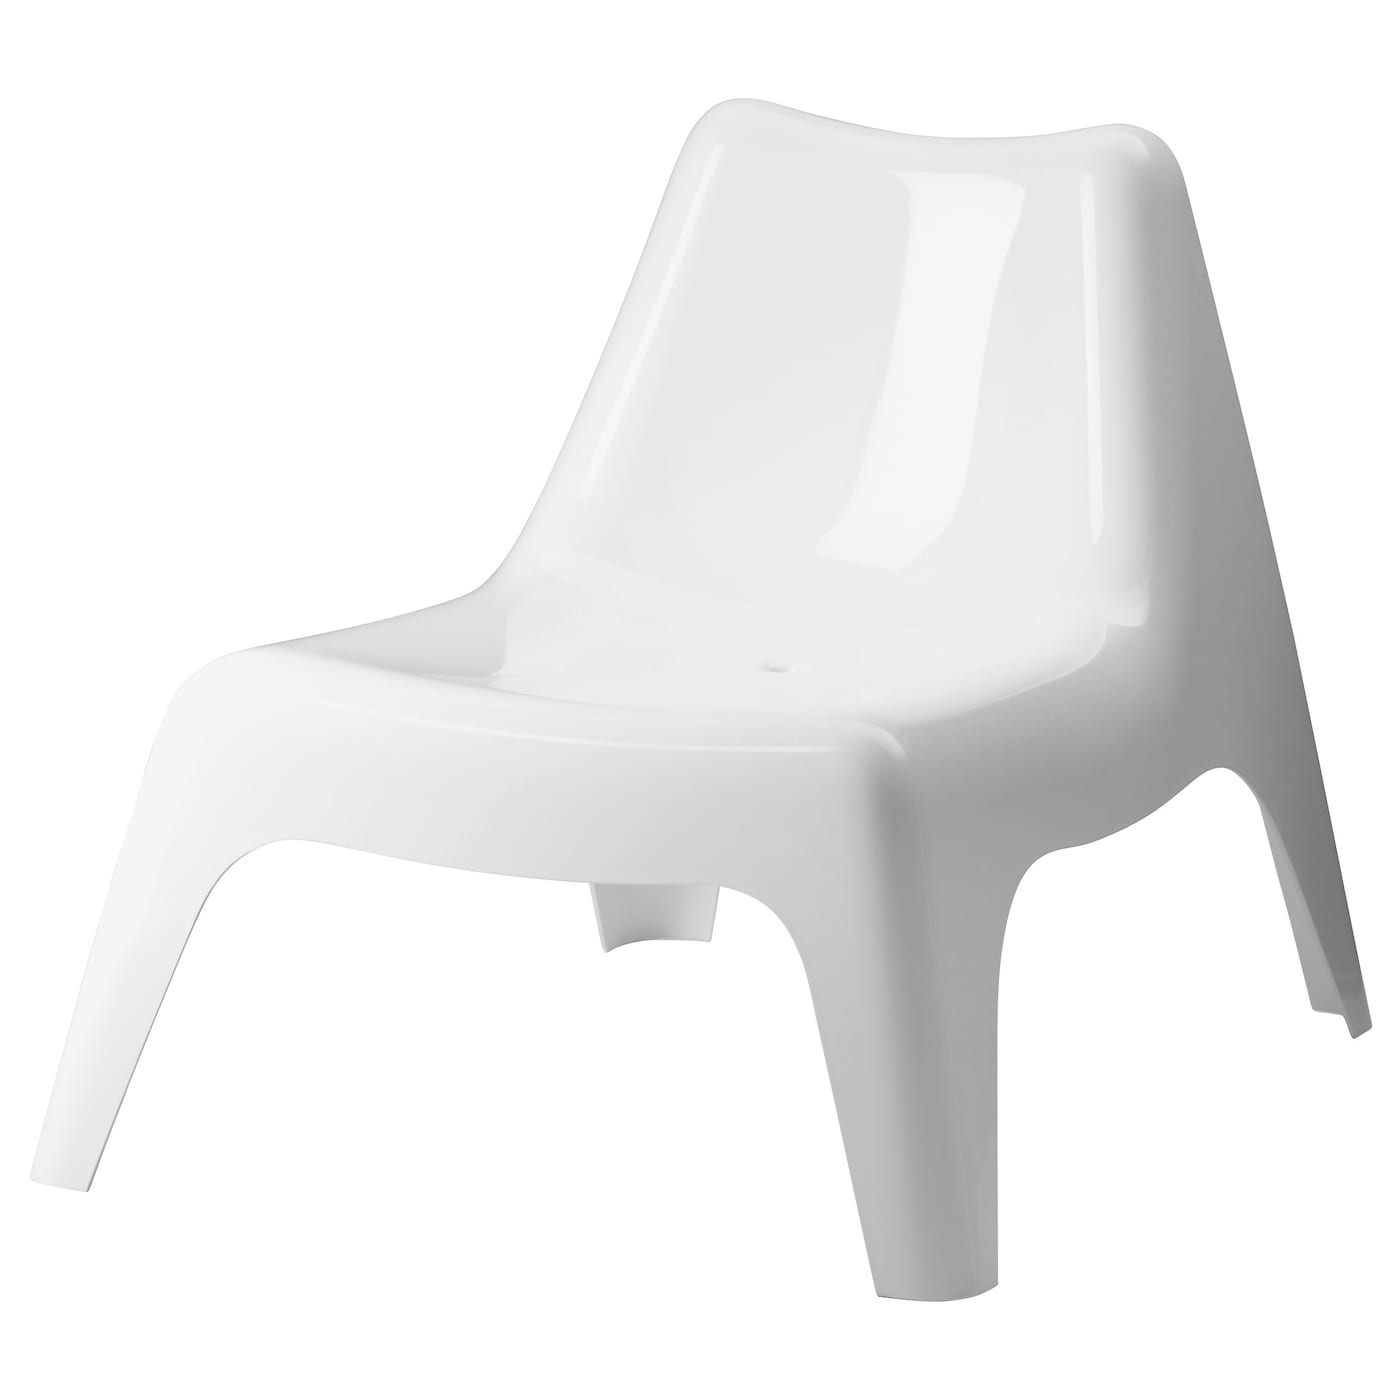 Outdoor garden seating ikea ireland dublin - Chaise enfant accoudoir ...